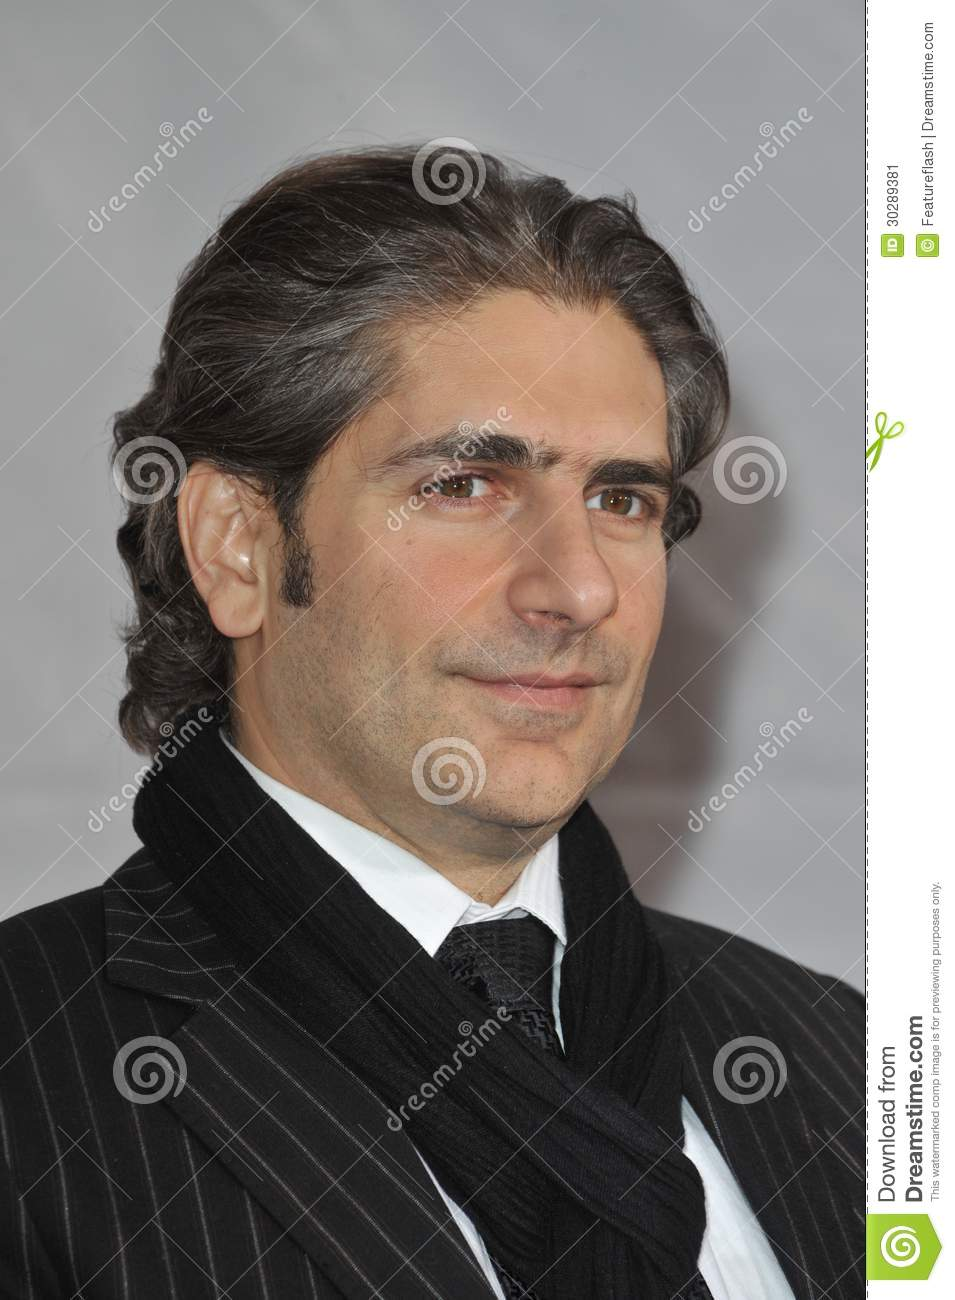 michael imperioli writer sopranosmichael imperioli instagram, michael imperioli 2016, michael imperioli wife, michael imperioli sopranos, michael imperioli californication, michael imperioli goodfellas, michael imperioli twitter, michael imperioli the lovely bones, michael imperioli facebook, michael imperioli height, michael imperioli, michael imperioli net worth, michael imperioli imdb, michael imperioli interview, michael imperioli 2015, michael imperioli the office, michael imperioli 2014, michael imperioli wiki, michael imperioli writer sopranos, michael imperioli funeral